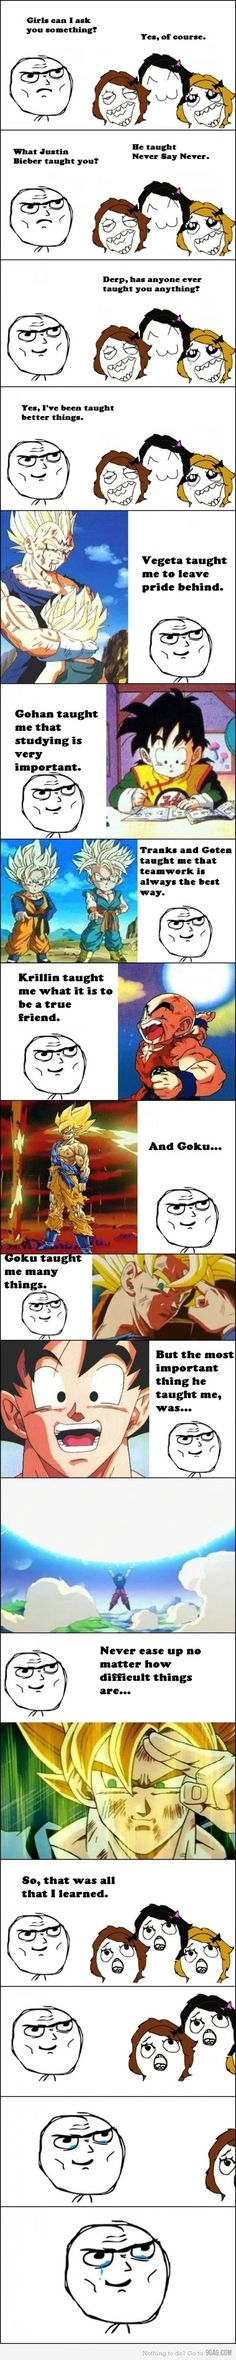 Life Lessons of Dragon Ball Z - so cheesy, but still so awesome.